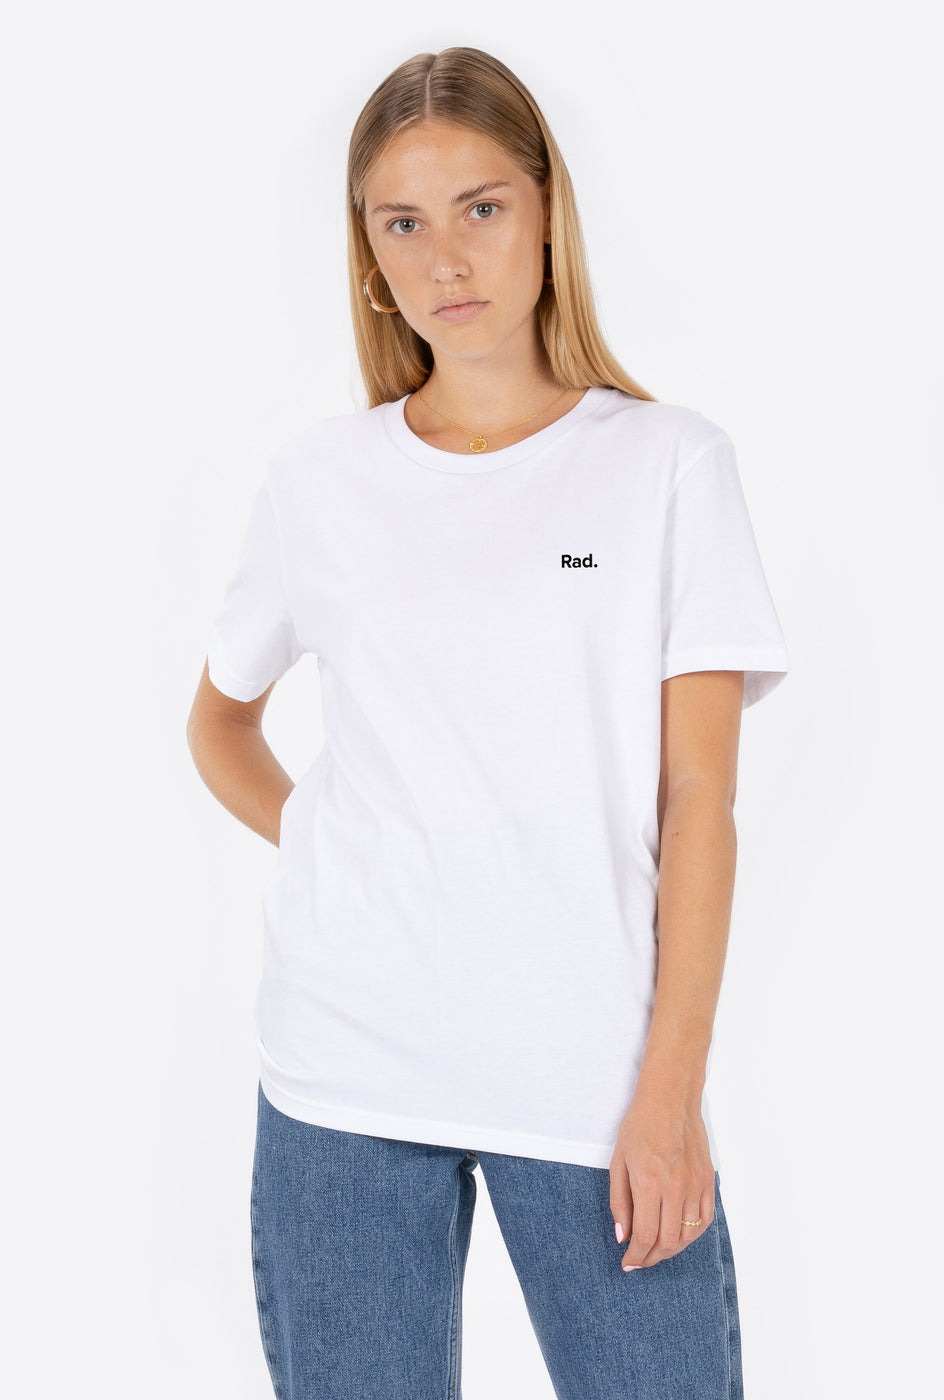 T-Shirt S/S White Classic Rad - Embroidered